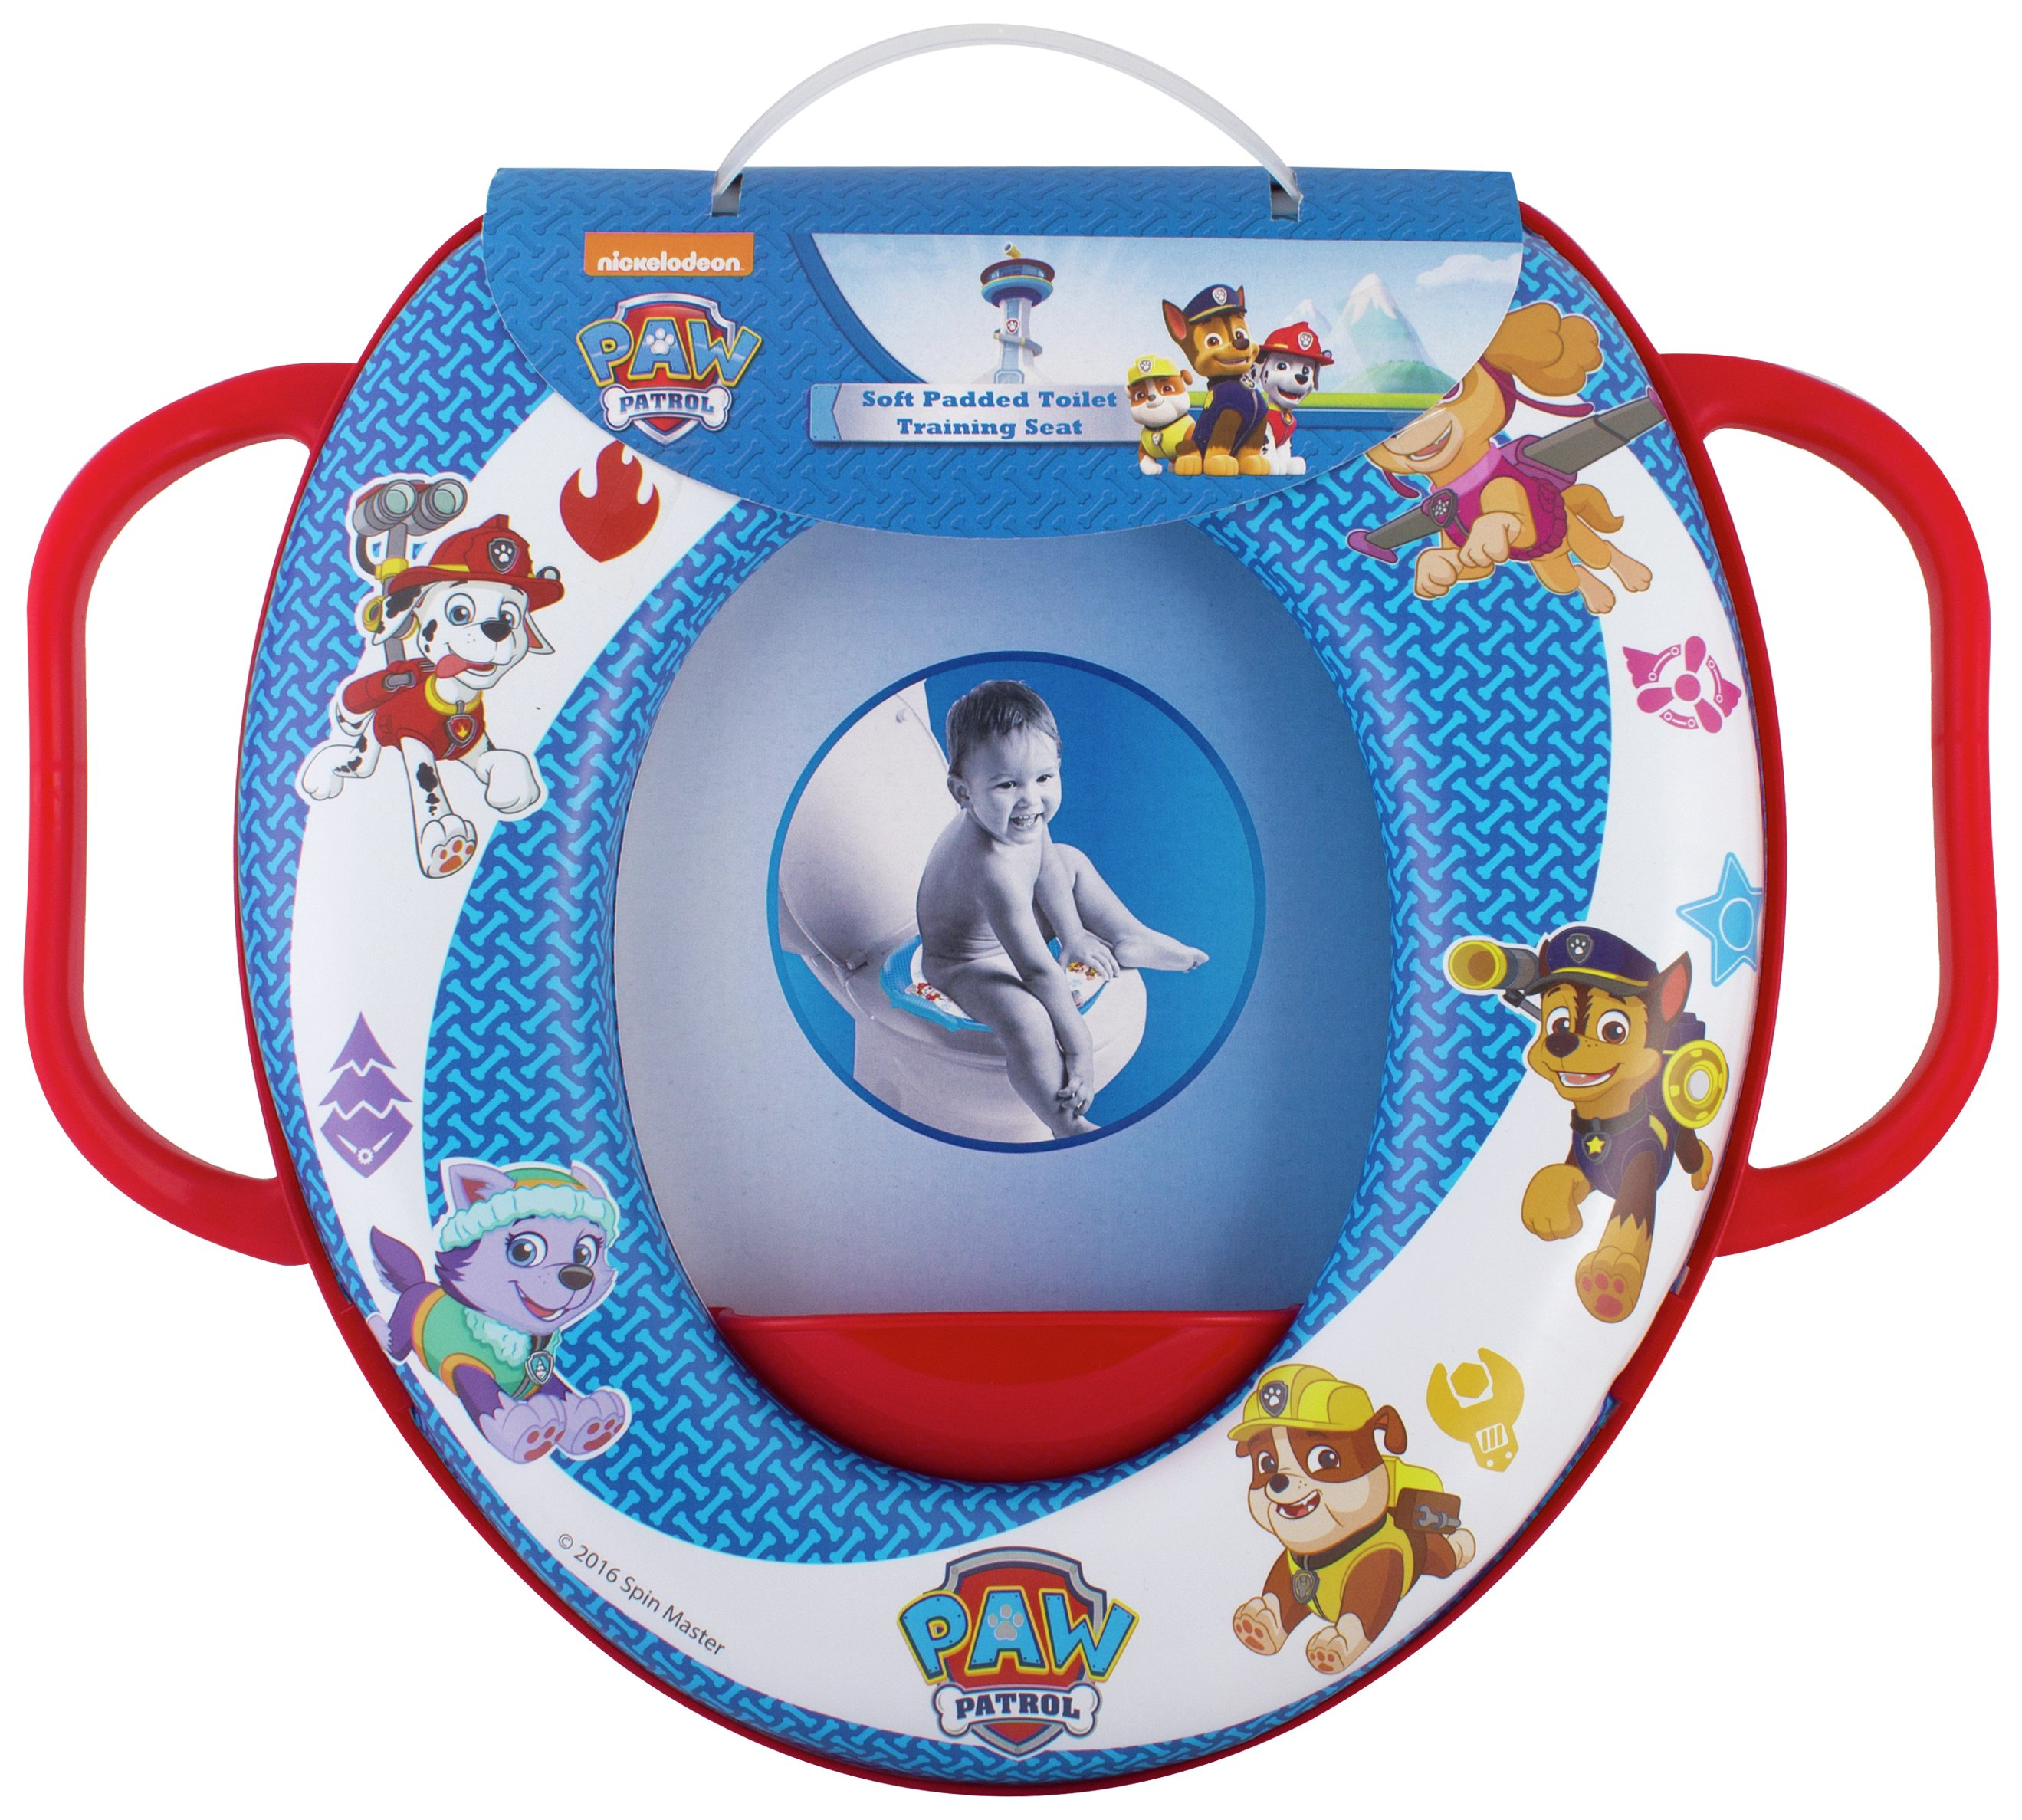 Paw Patrol Soft Padded Toilet Seat